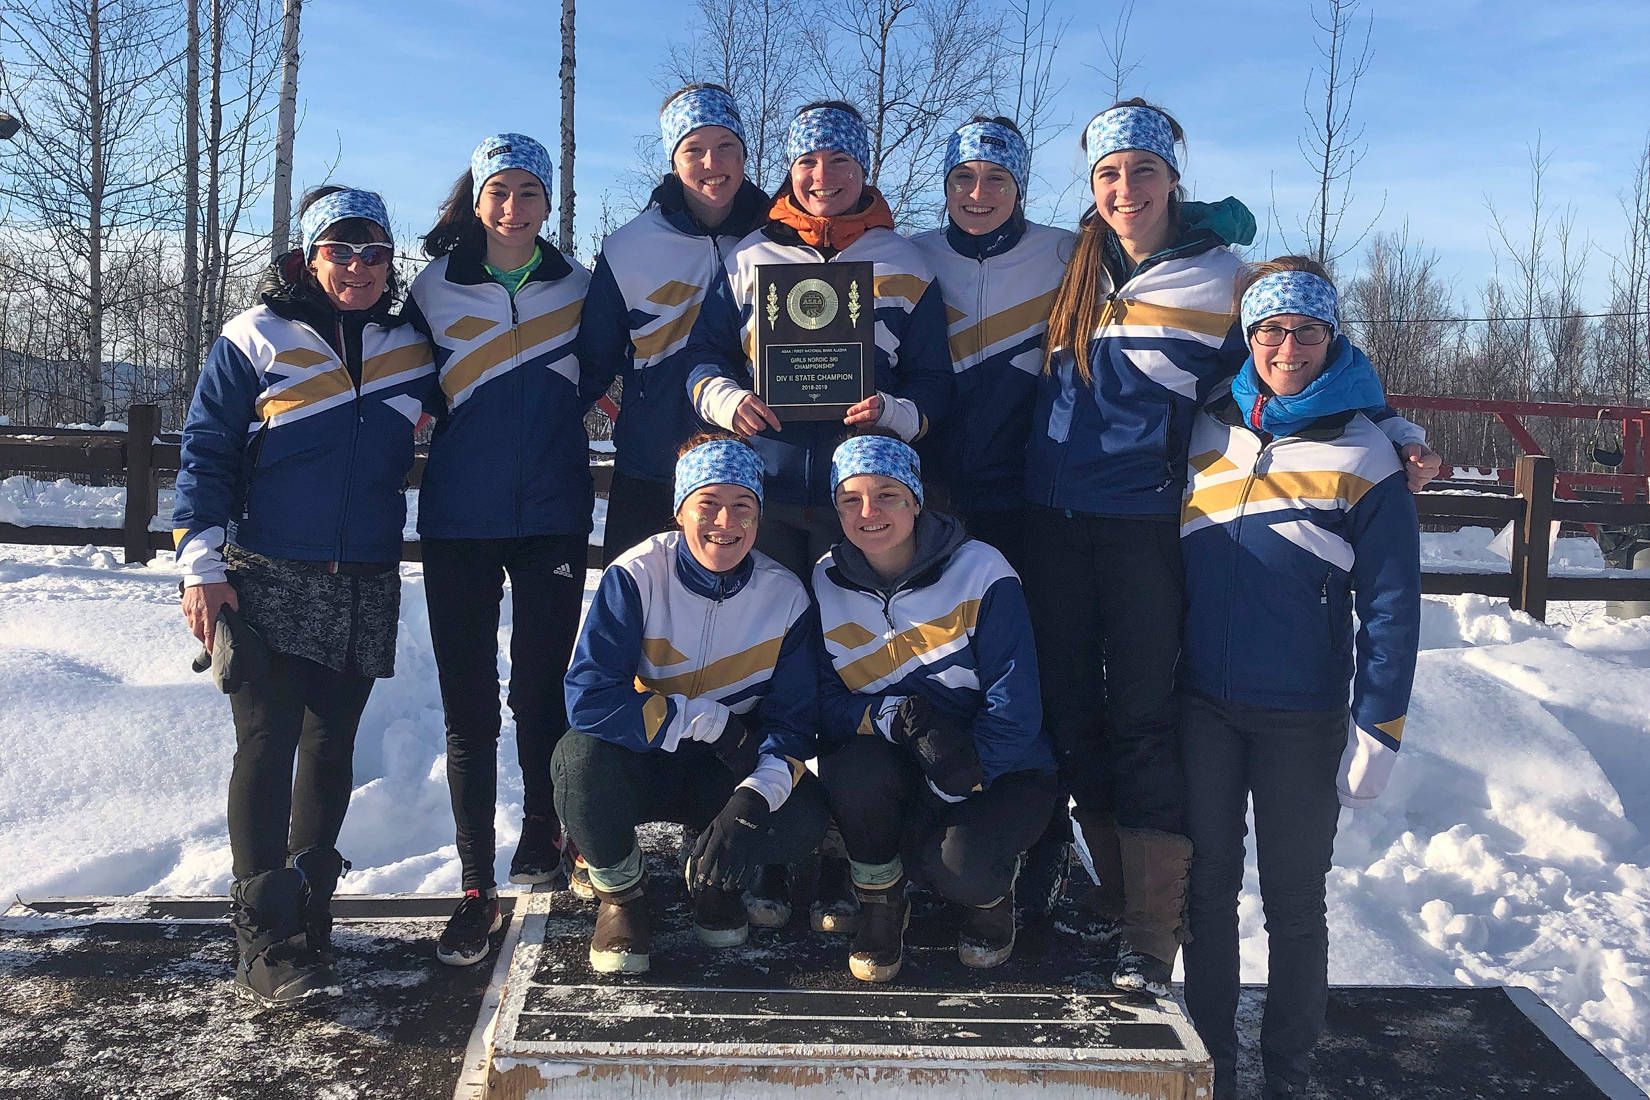 Members of the Homer girls cross-country ski team pose with their first place award for the small schools division for the state skiing championship meet held in Fairbanks, Alaska the weekend of Feb. 22-23, 2019. (Photo courtesy Alison O'Hara)